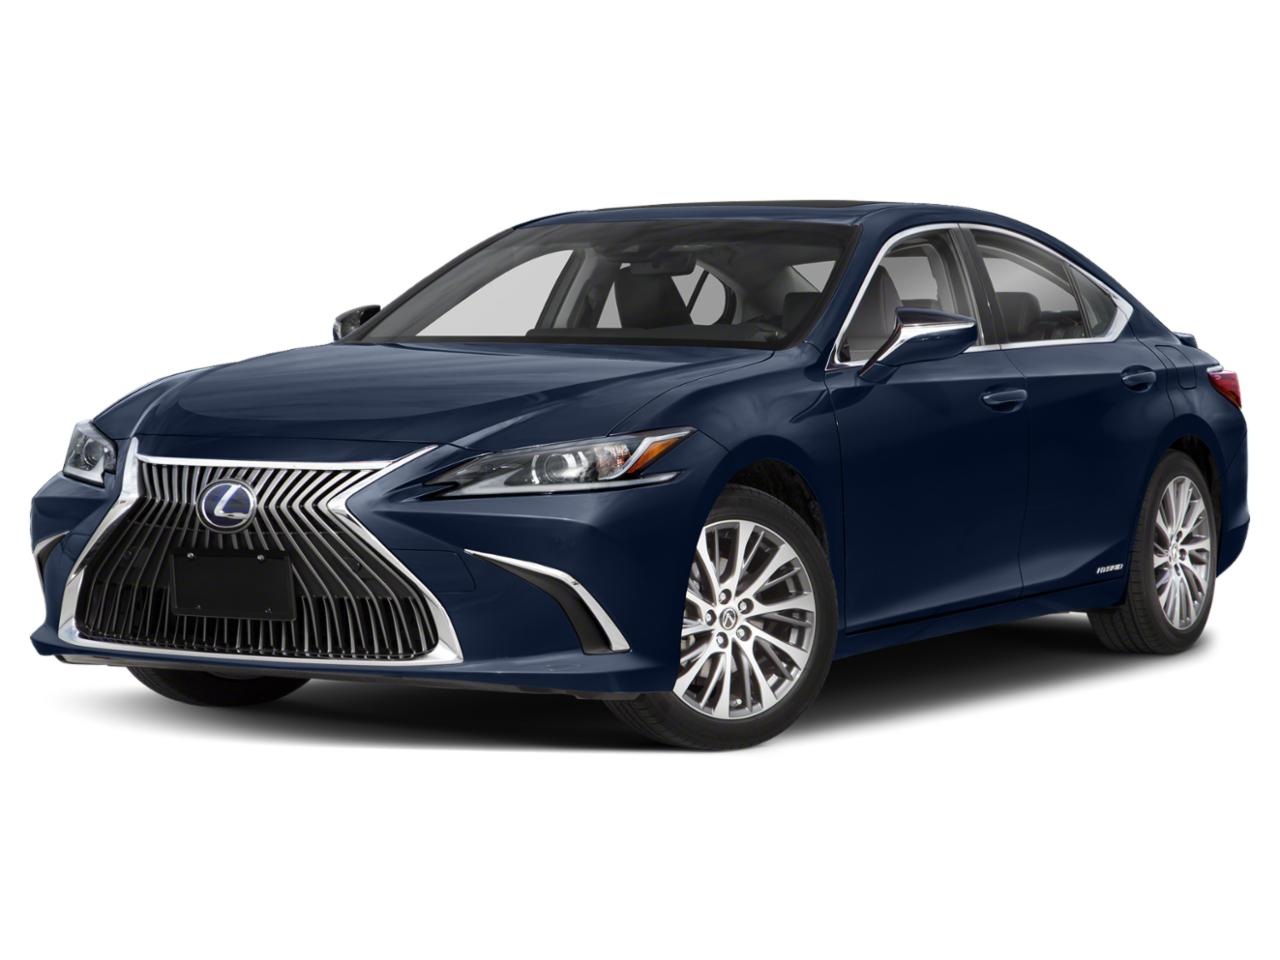 2021 Lexus ES 300h Vehicle Photo in Fort Worth, TX 76132